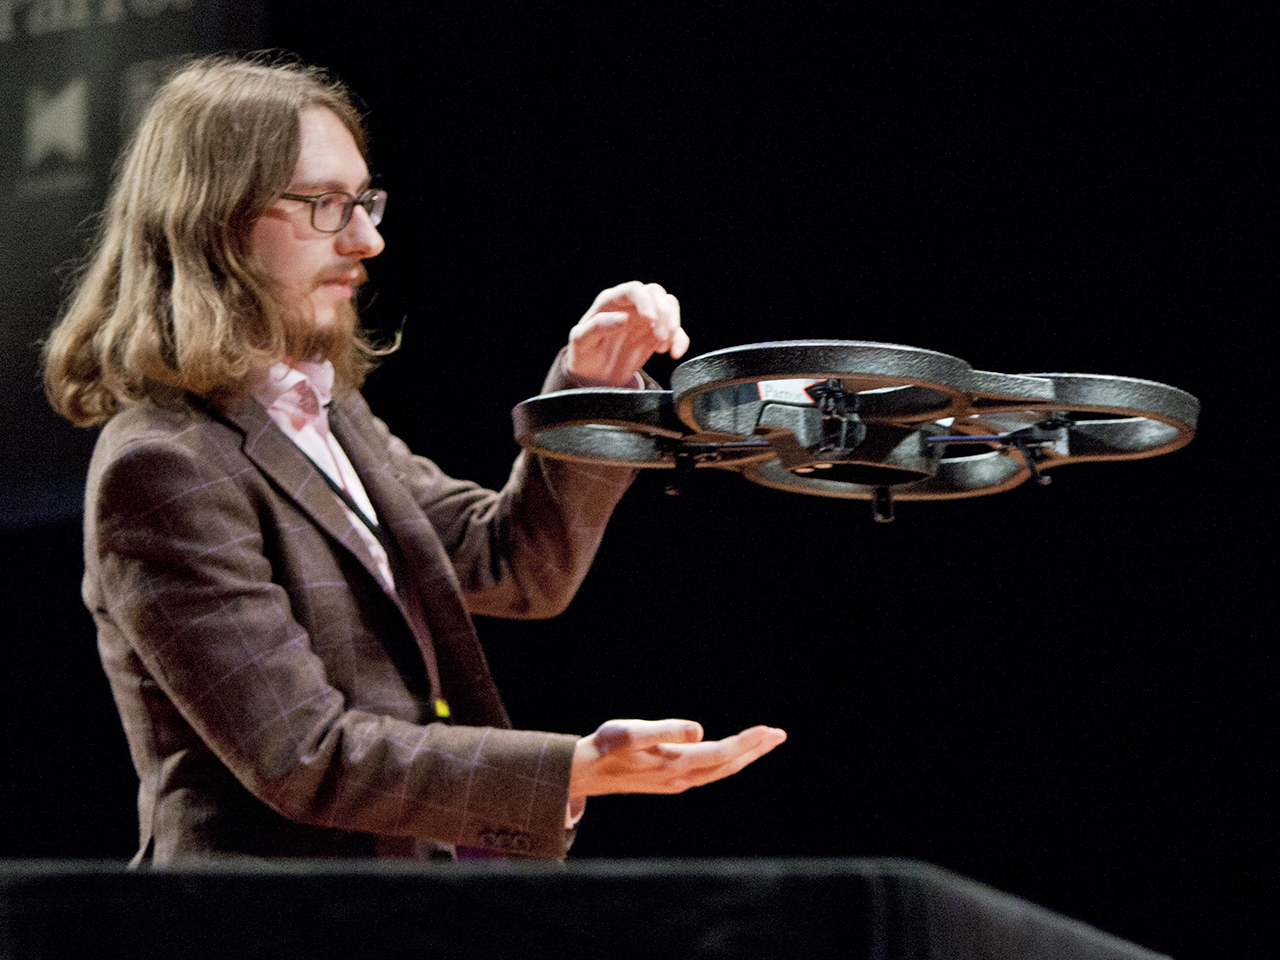 (10/11/2013) Julian Szajdzicki catches an AR Parrot 2.0 drone during a demonstration by Nodecopter at the DARC conference's AfterDARC session in NYU's...